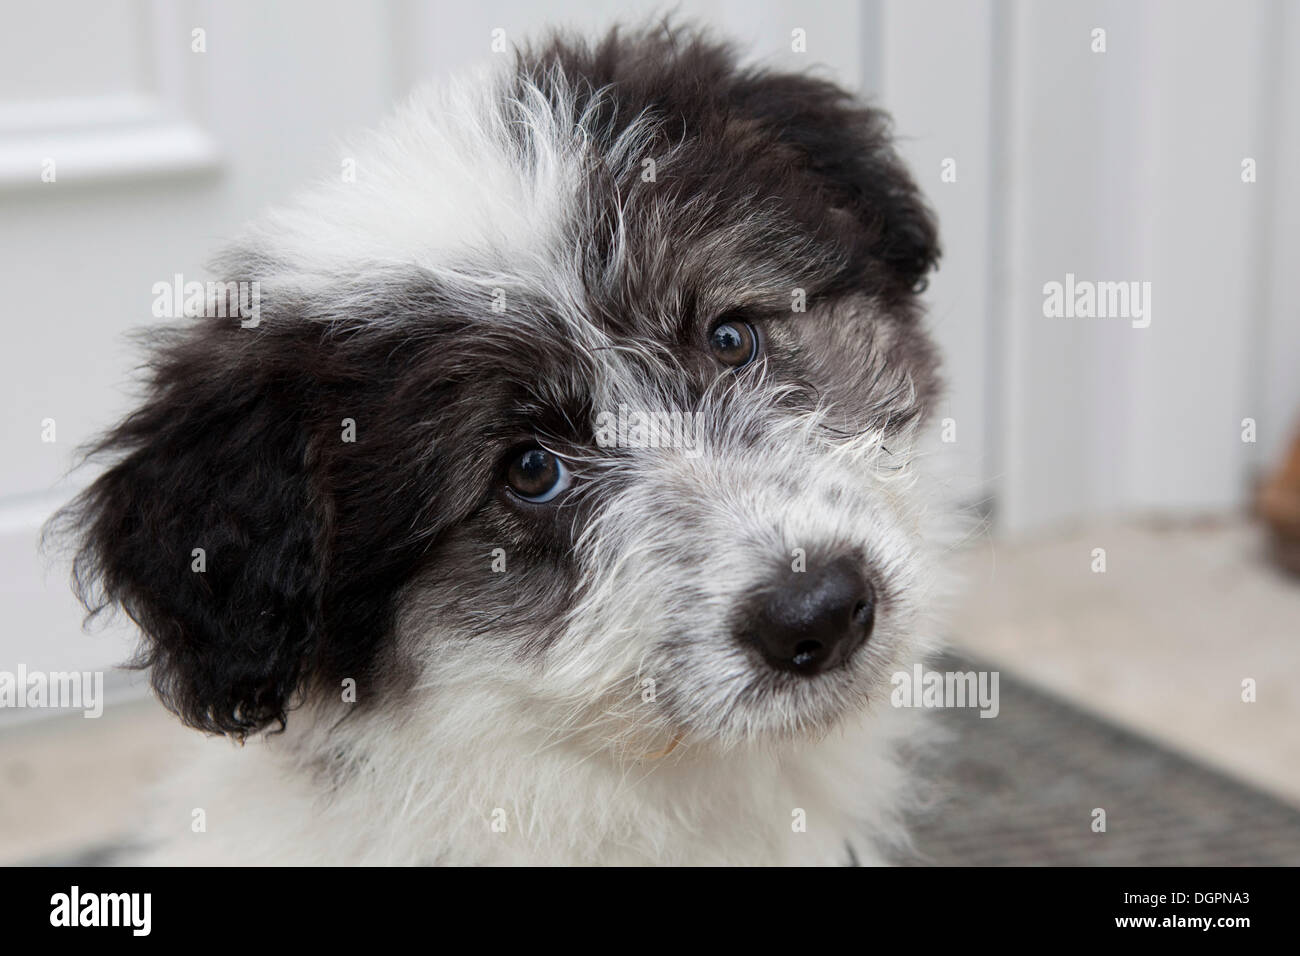 Mixed-breed Dog (Canis lupus familiaris), portrait Stock Photo